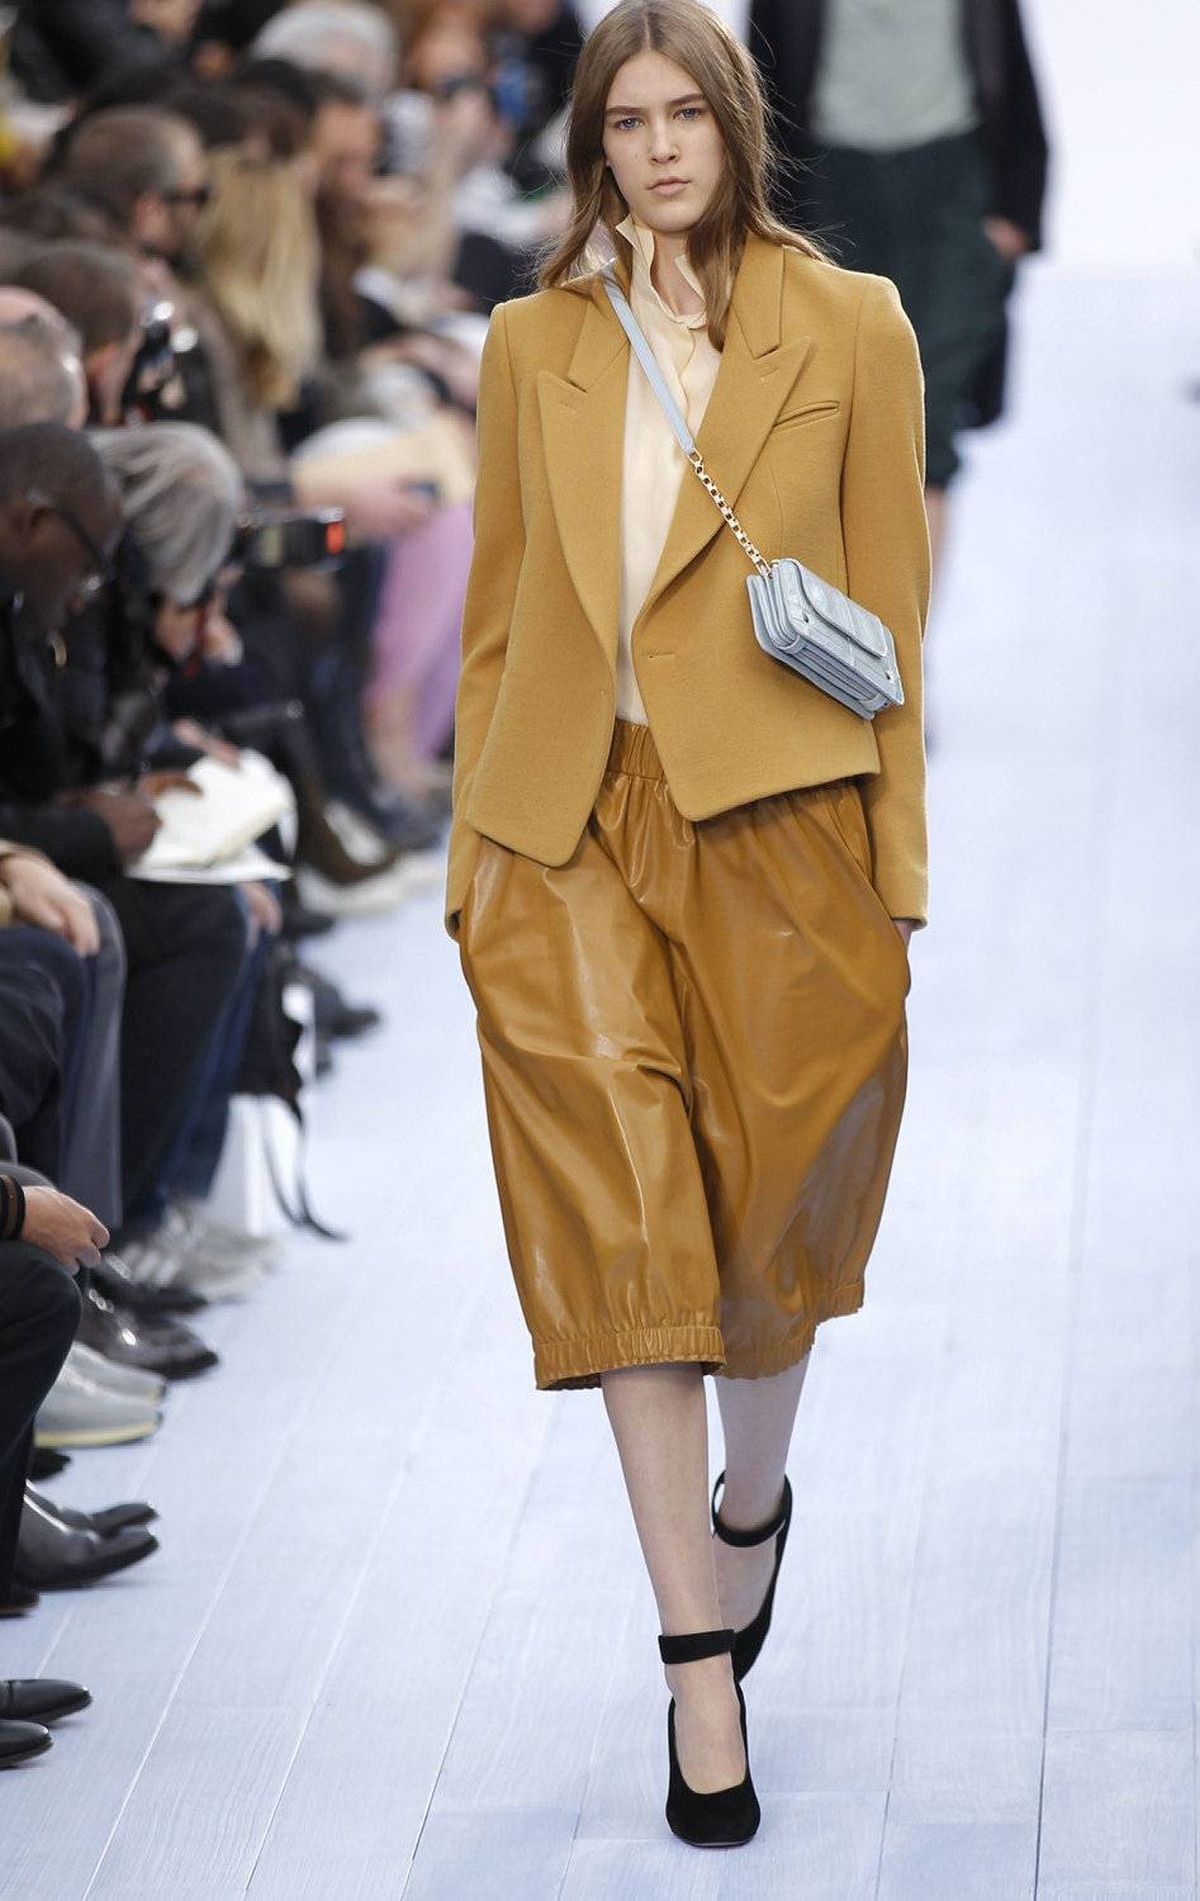 Where leather pants in previous seasons have typically been second-skin tight, Waight Keller is among several designers showing slouchier fits and varying lengths. The catch is that these mustard-yellow culottes are the reverse of flattering.